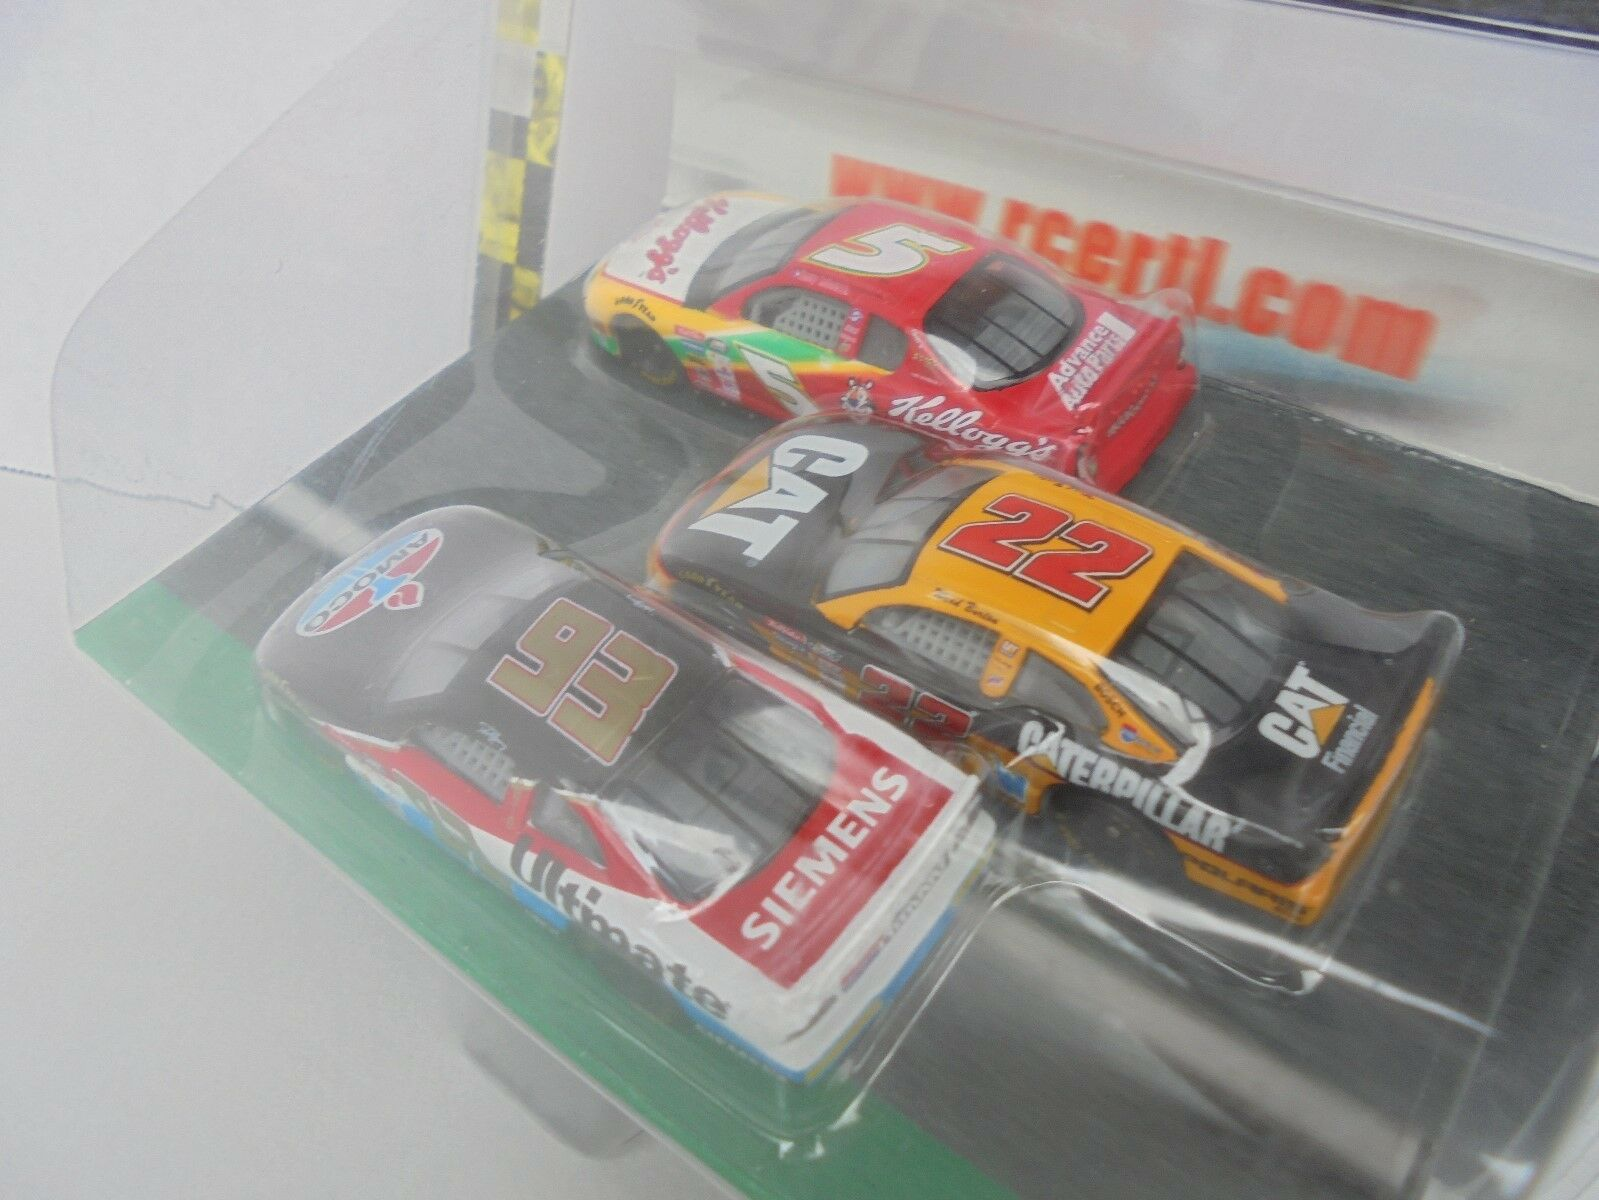 Terry LaBonte 5 & 22 & 93 Bumper 2 Bumper Making a Move Nascar Diecast Collectab